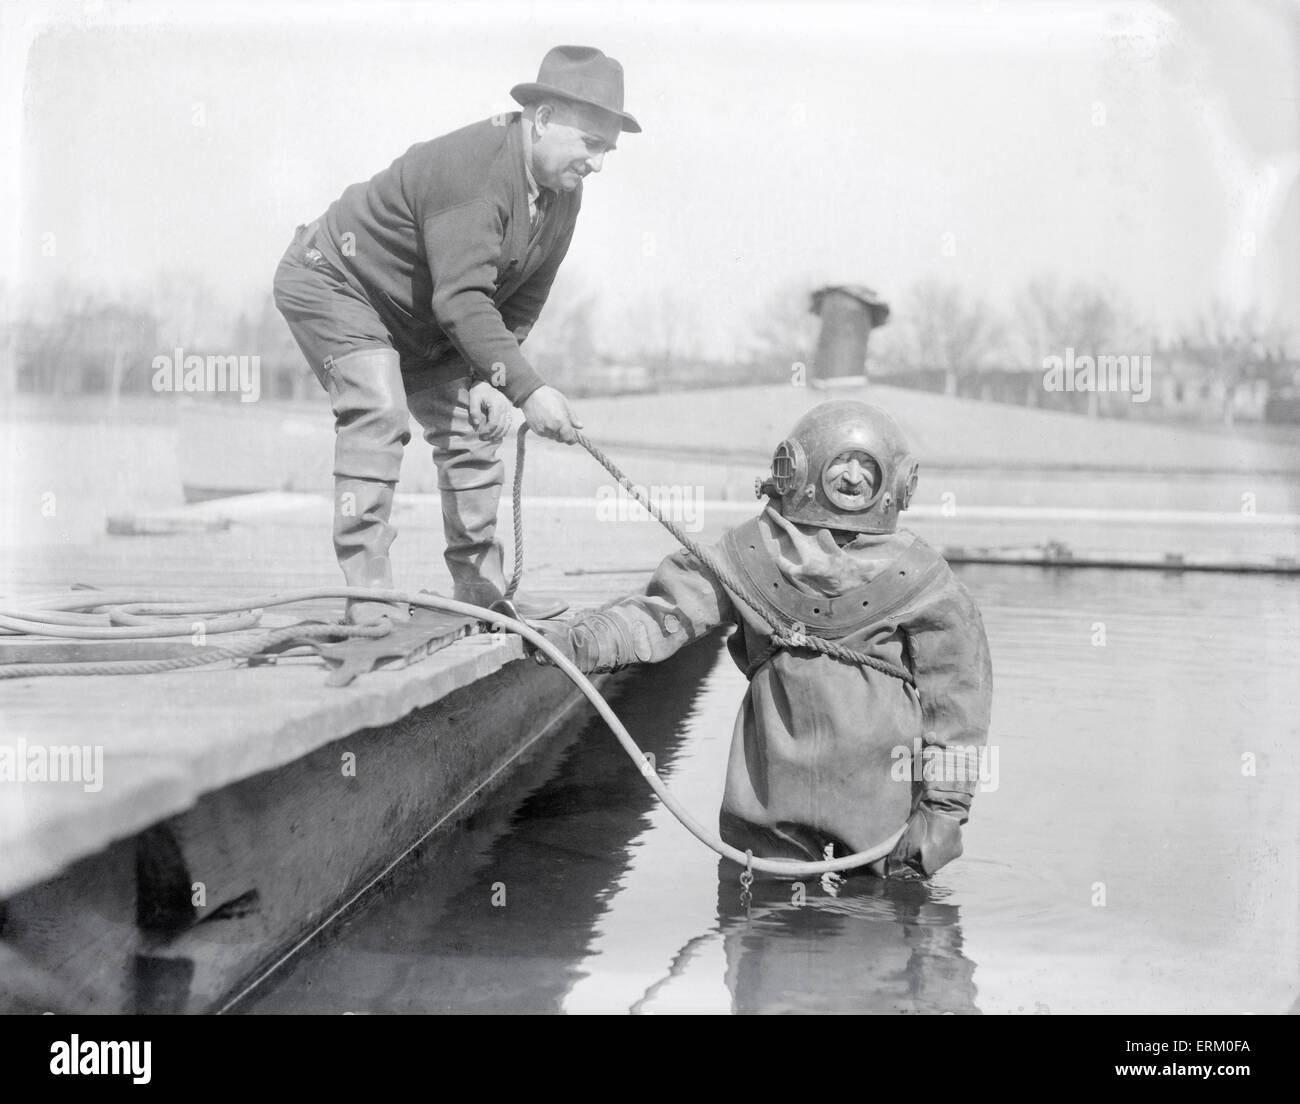 Antique 1929 photograph, diver John Robinson in Standard diving dress at Harvard's Newell Boat House on the - Stock Image